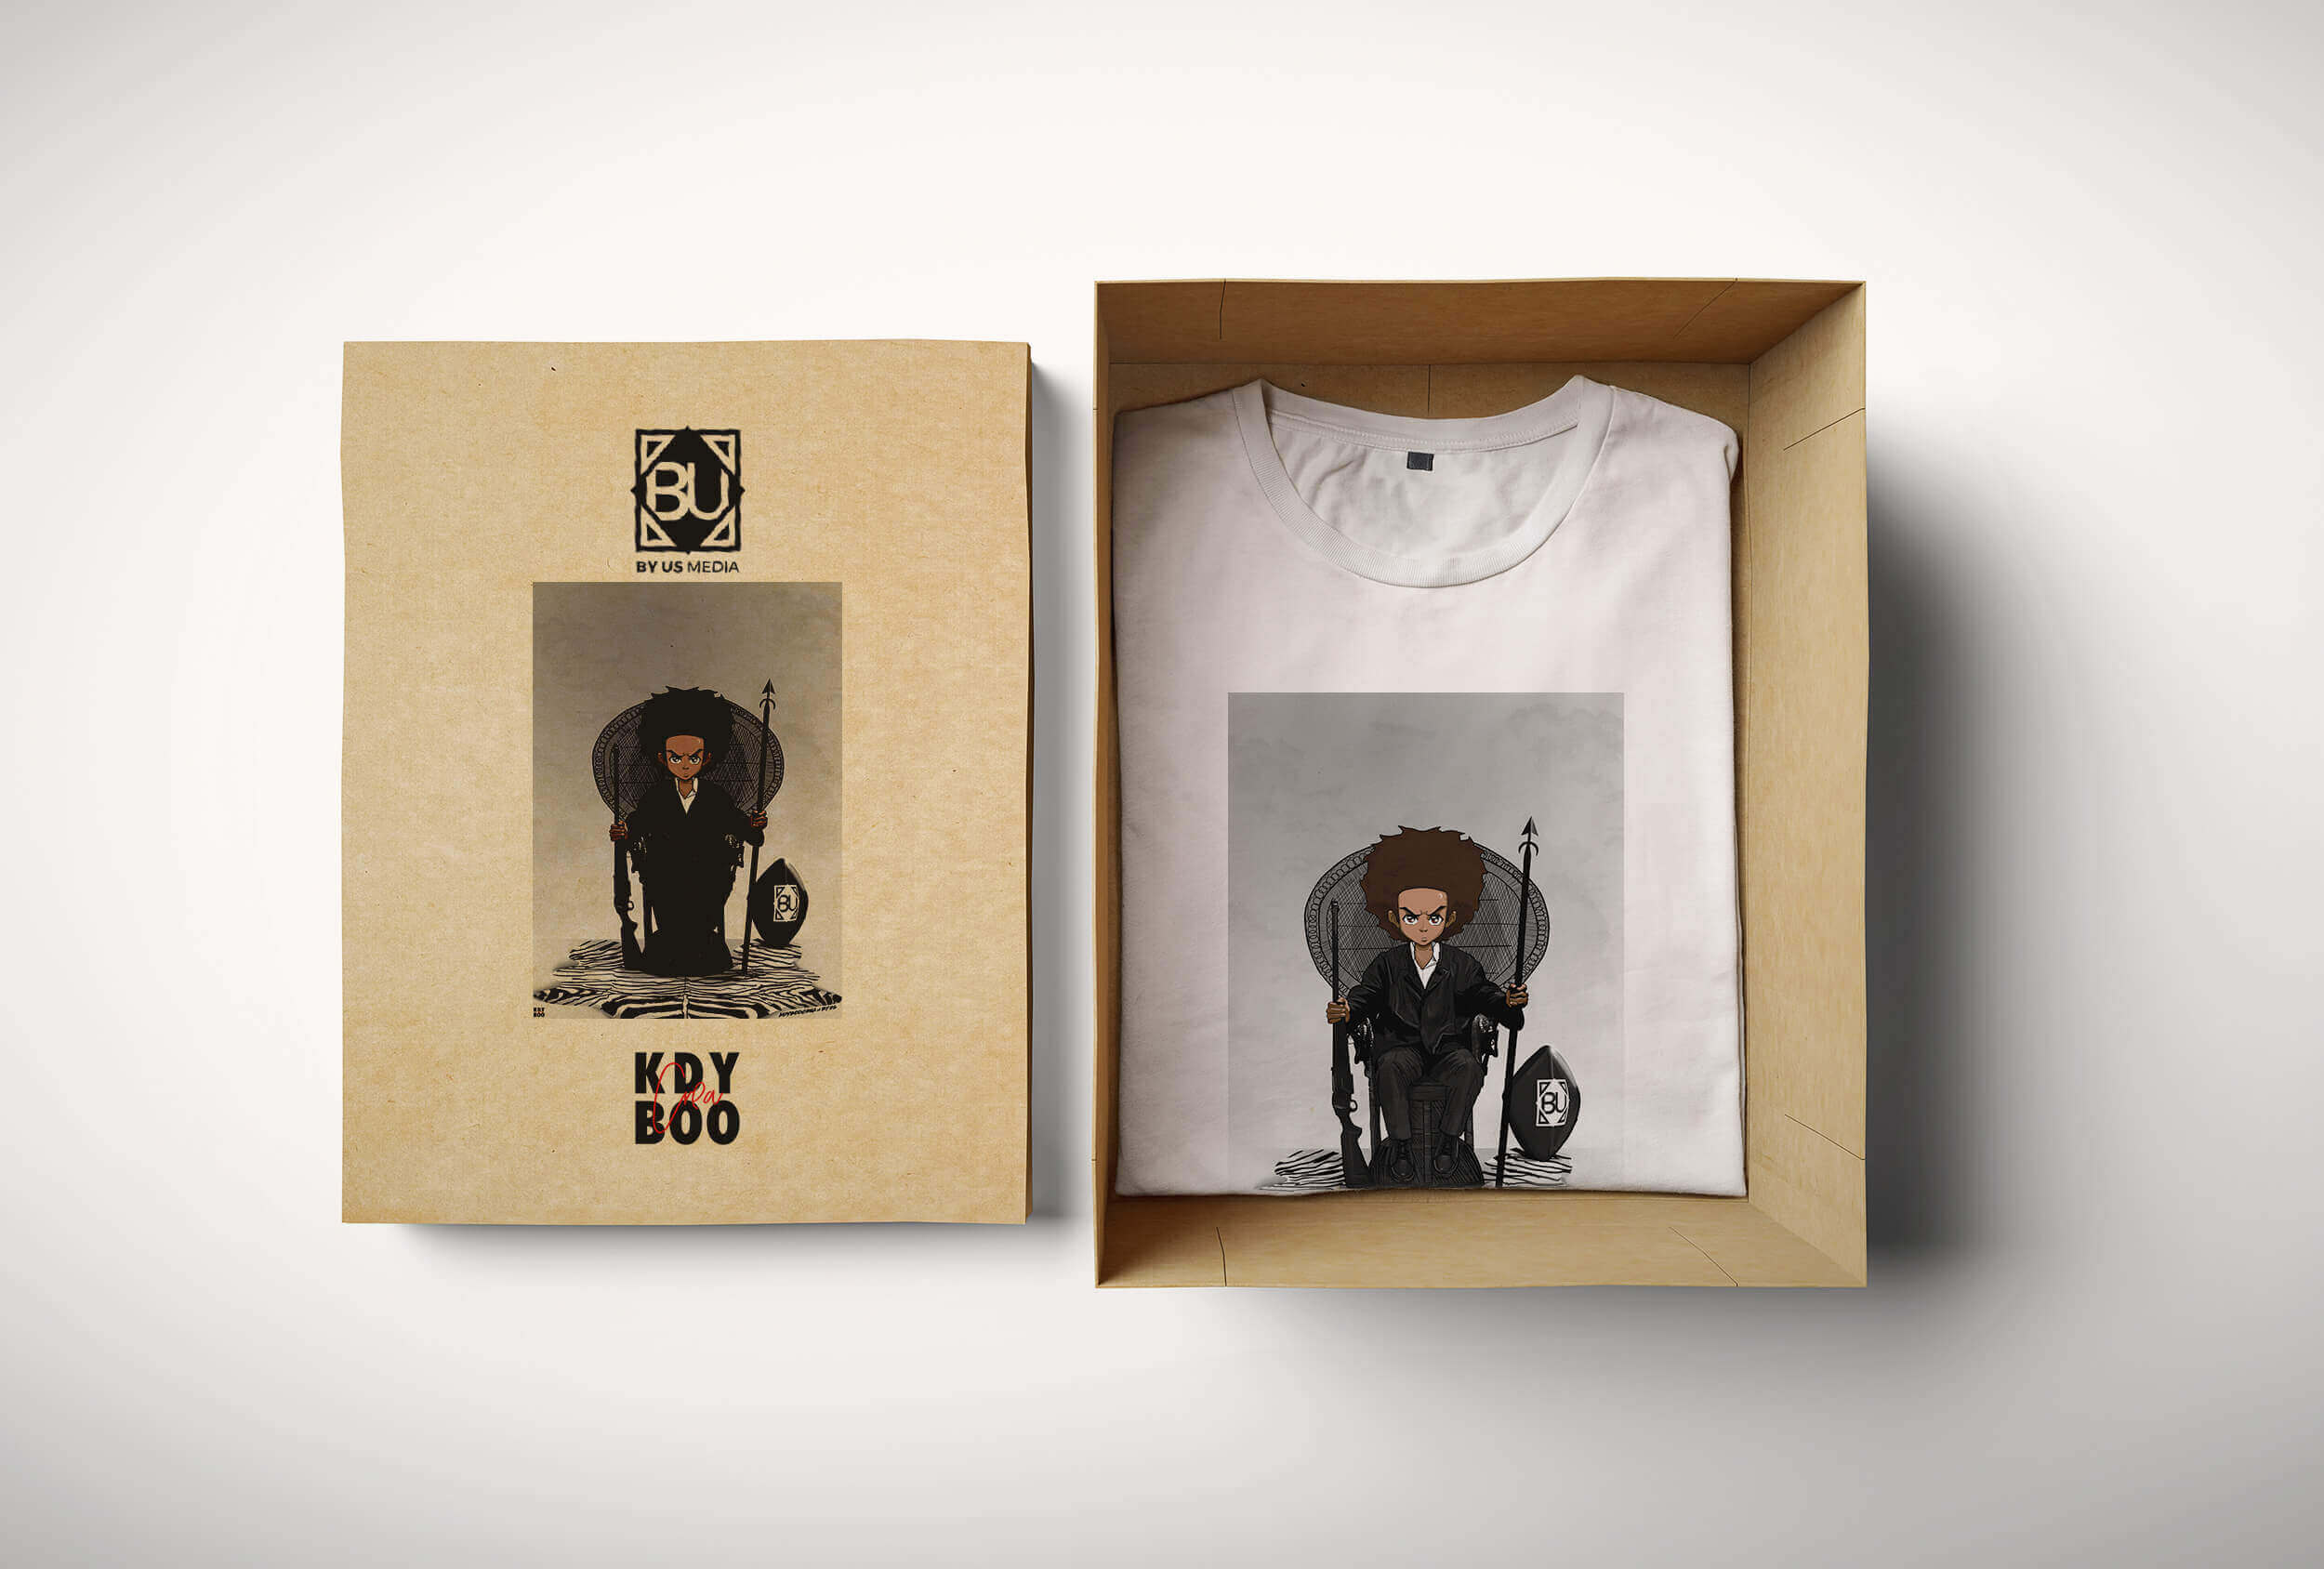 T-shirt collector KDYBOOCREA X BYUS MEDIA